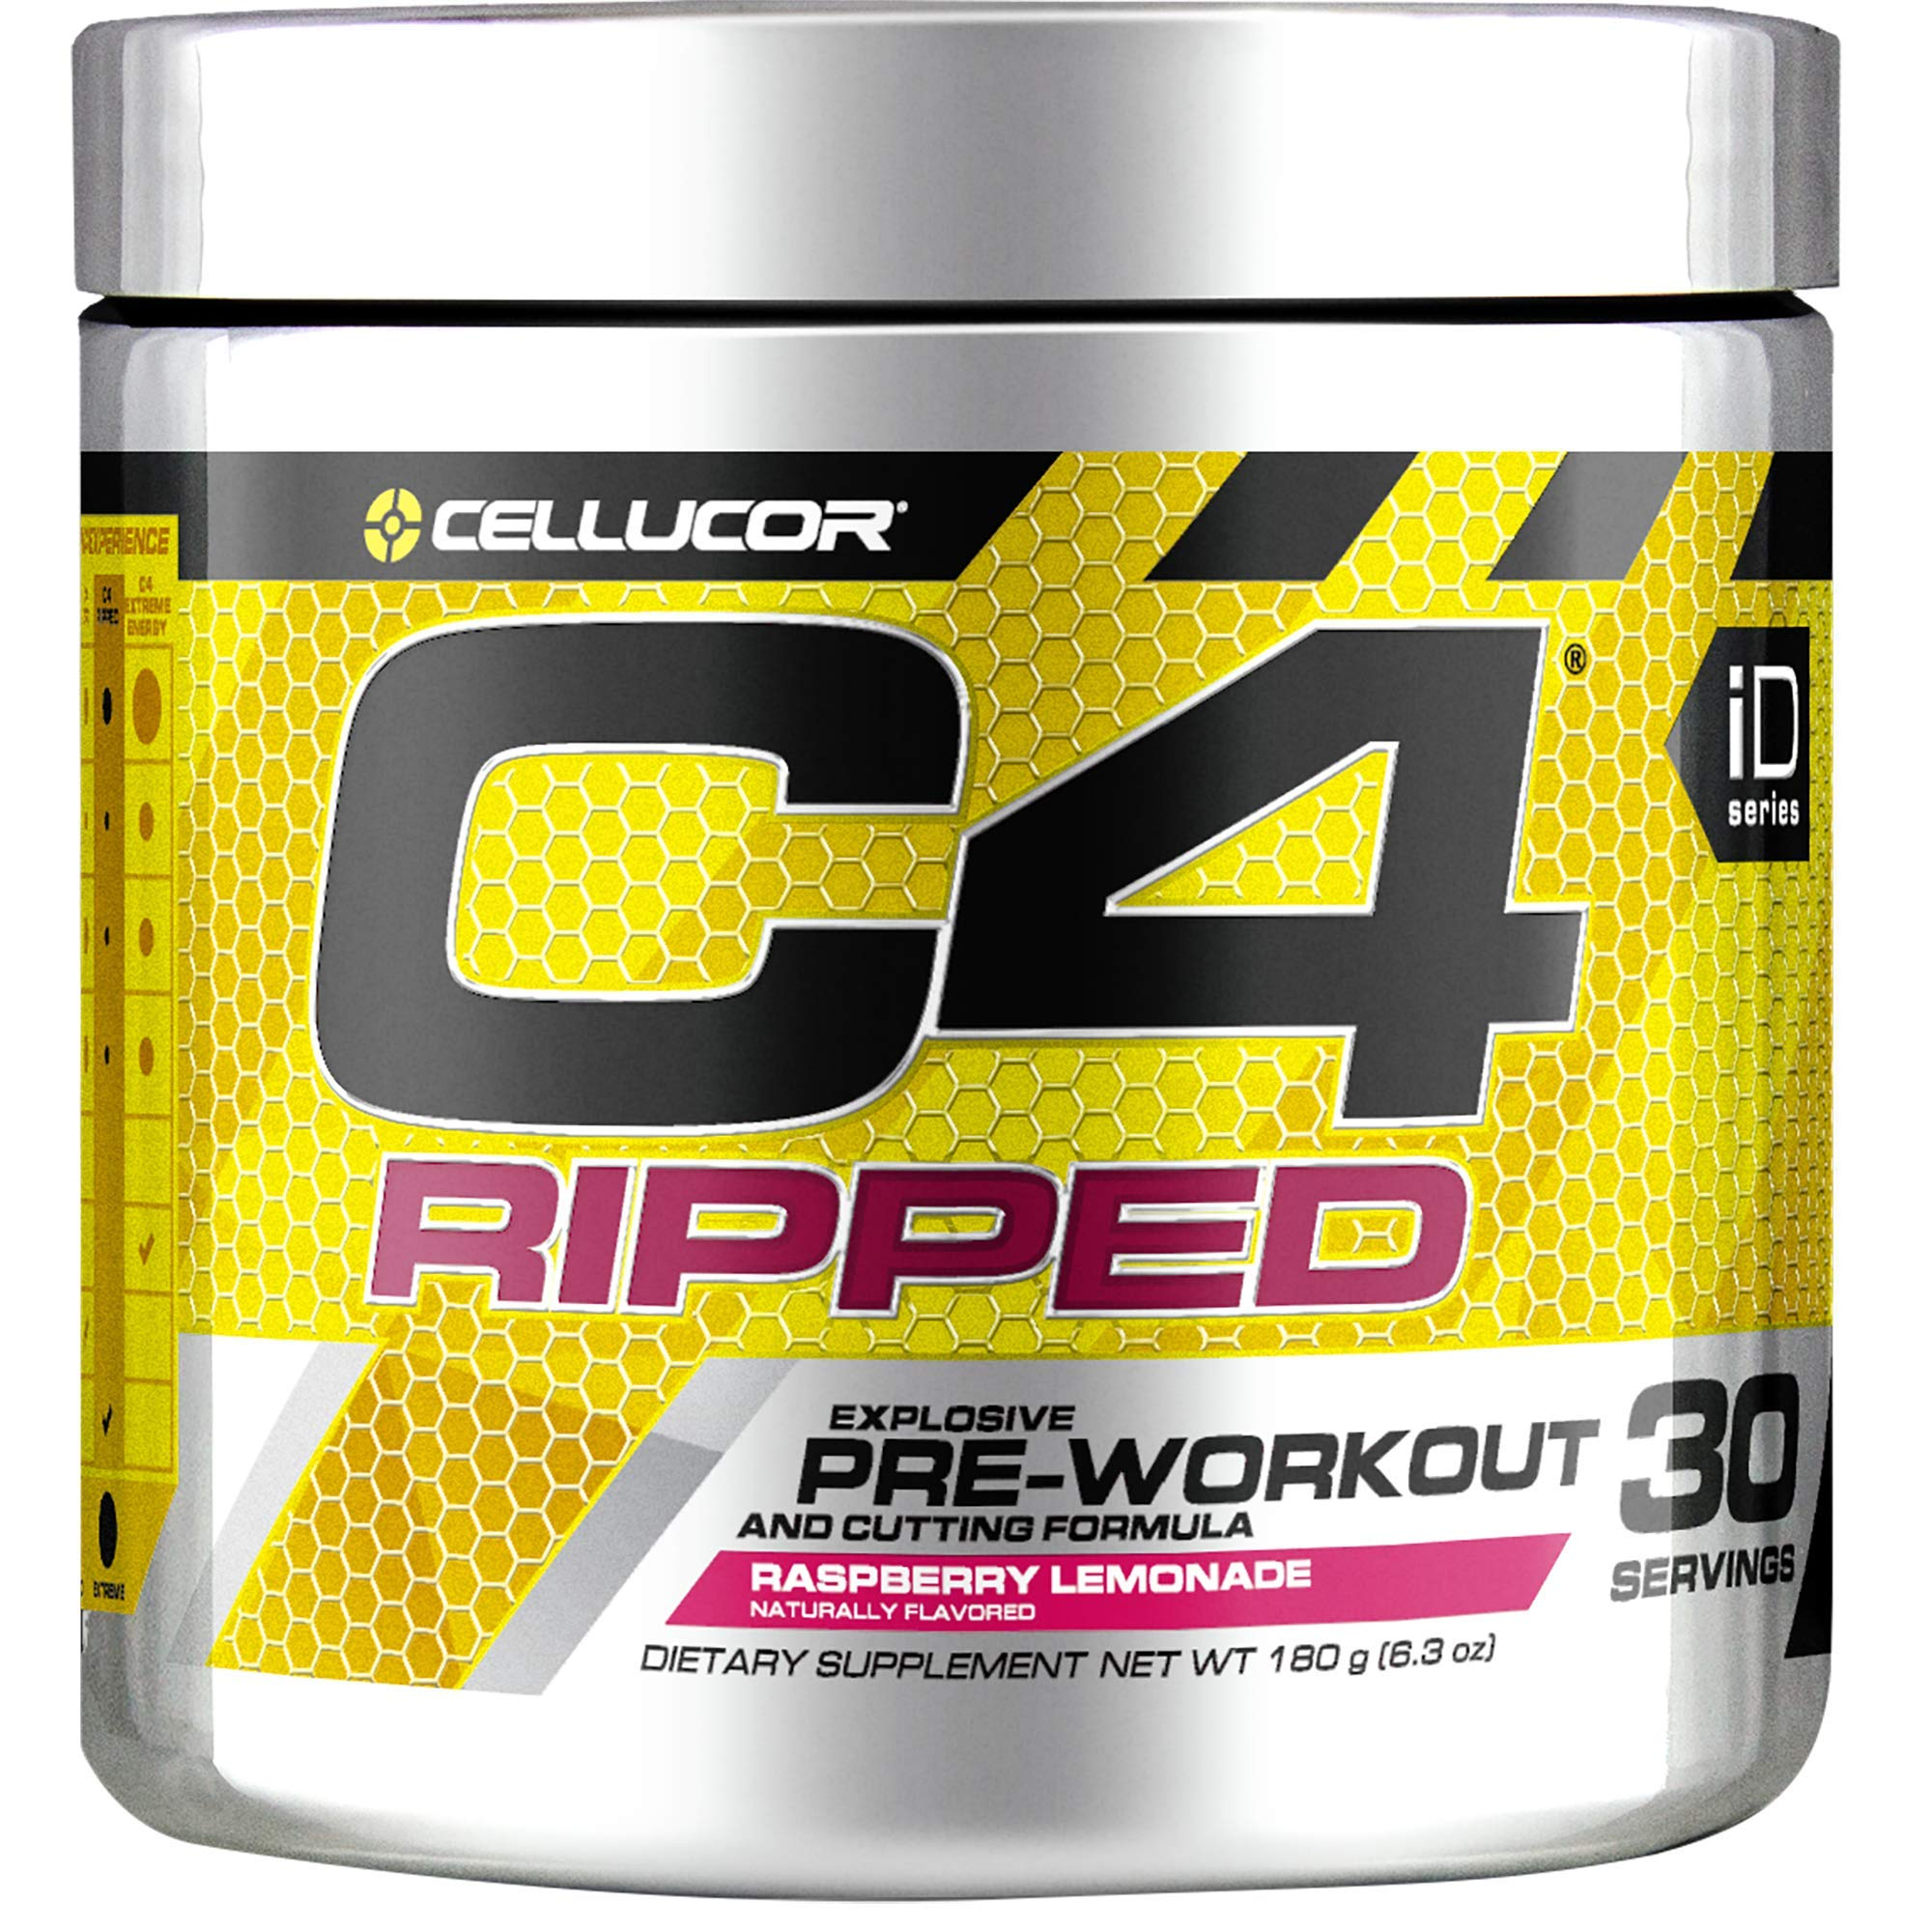 CELLUCOR C4 Ripped Pre Workout, Raspberry Lemonade, 30 Servings - Preworkout Powder for Men & Women With Green Coffee Bean Extract & L Carnitine by Cellucor